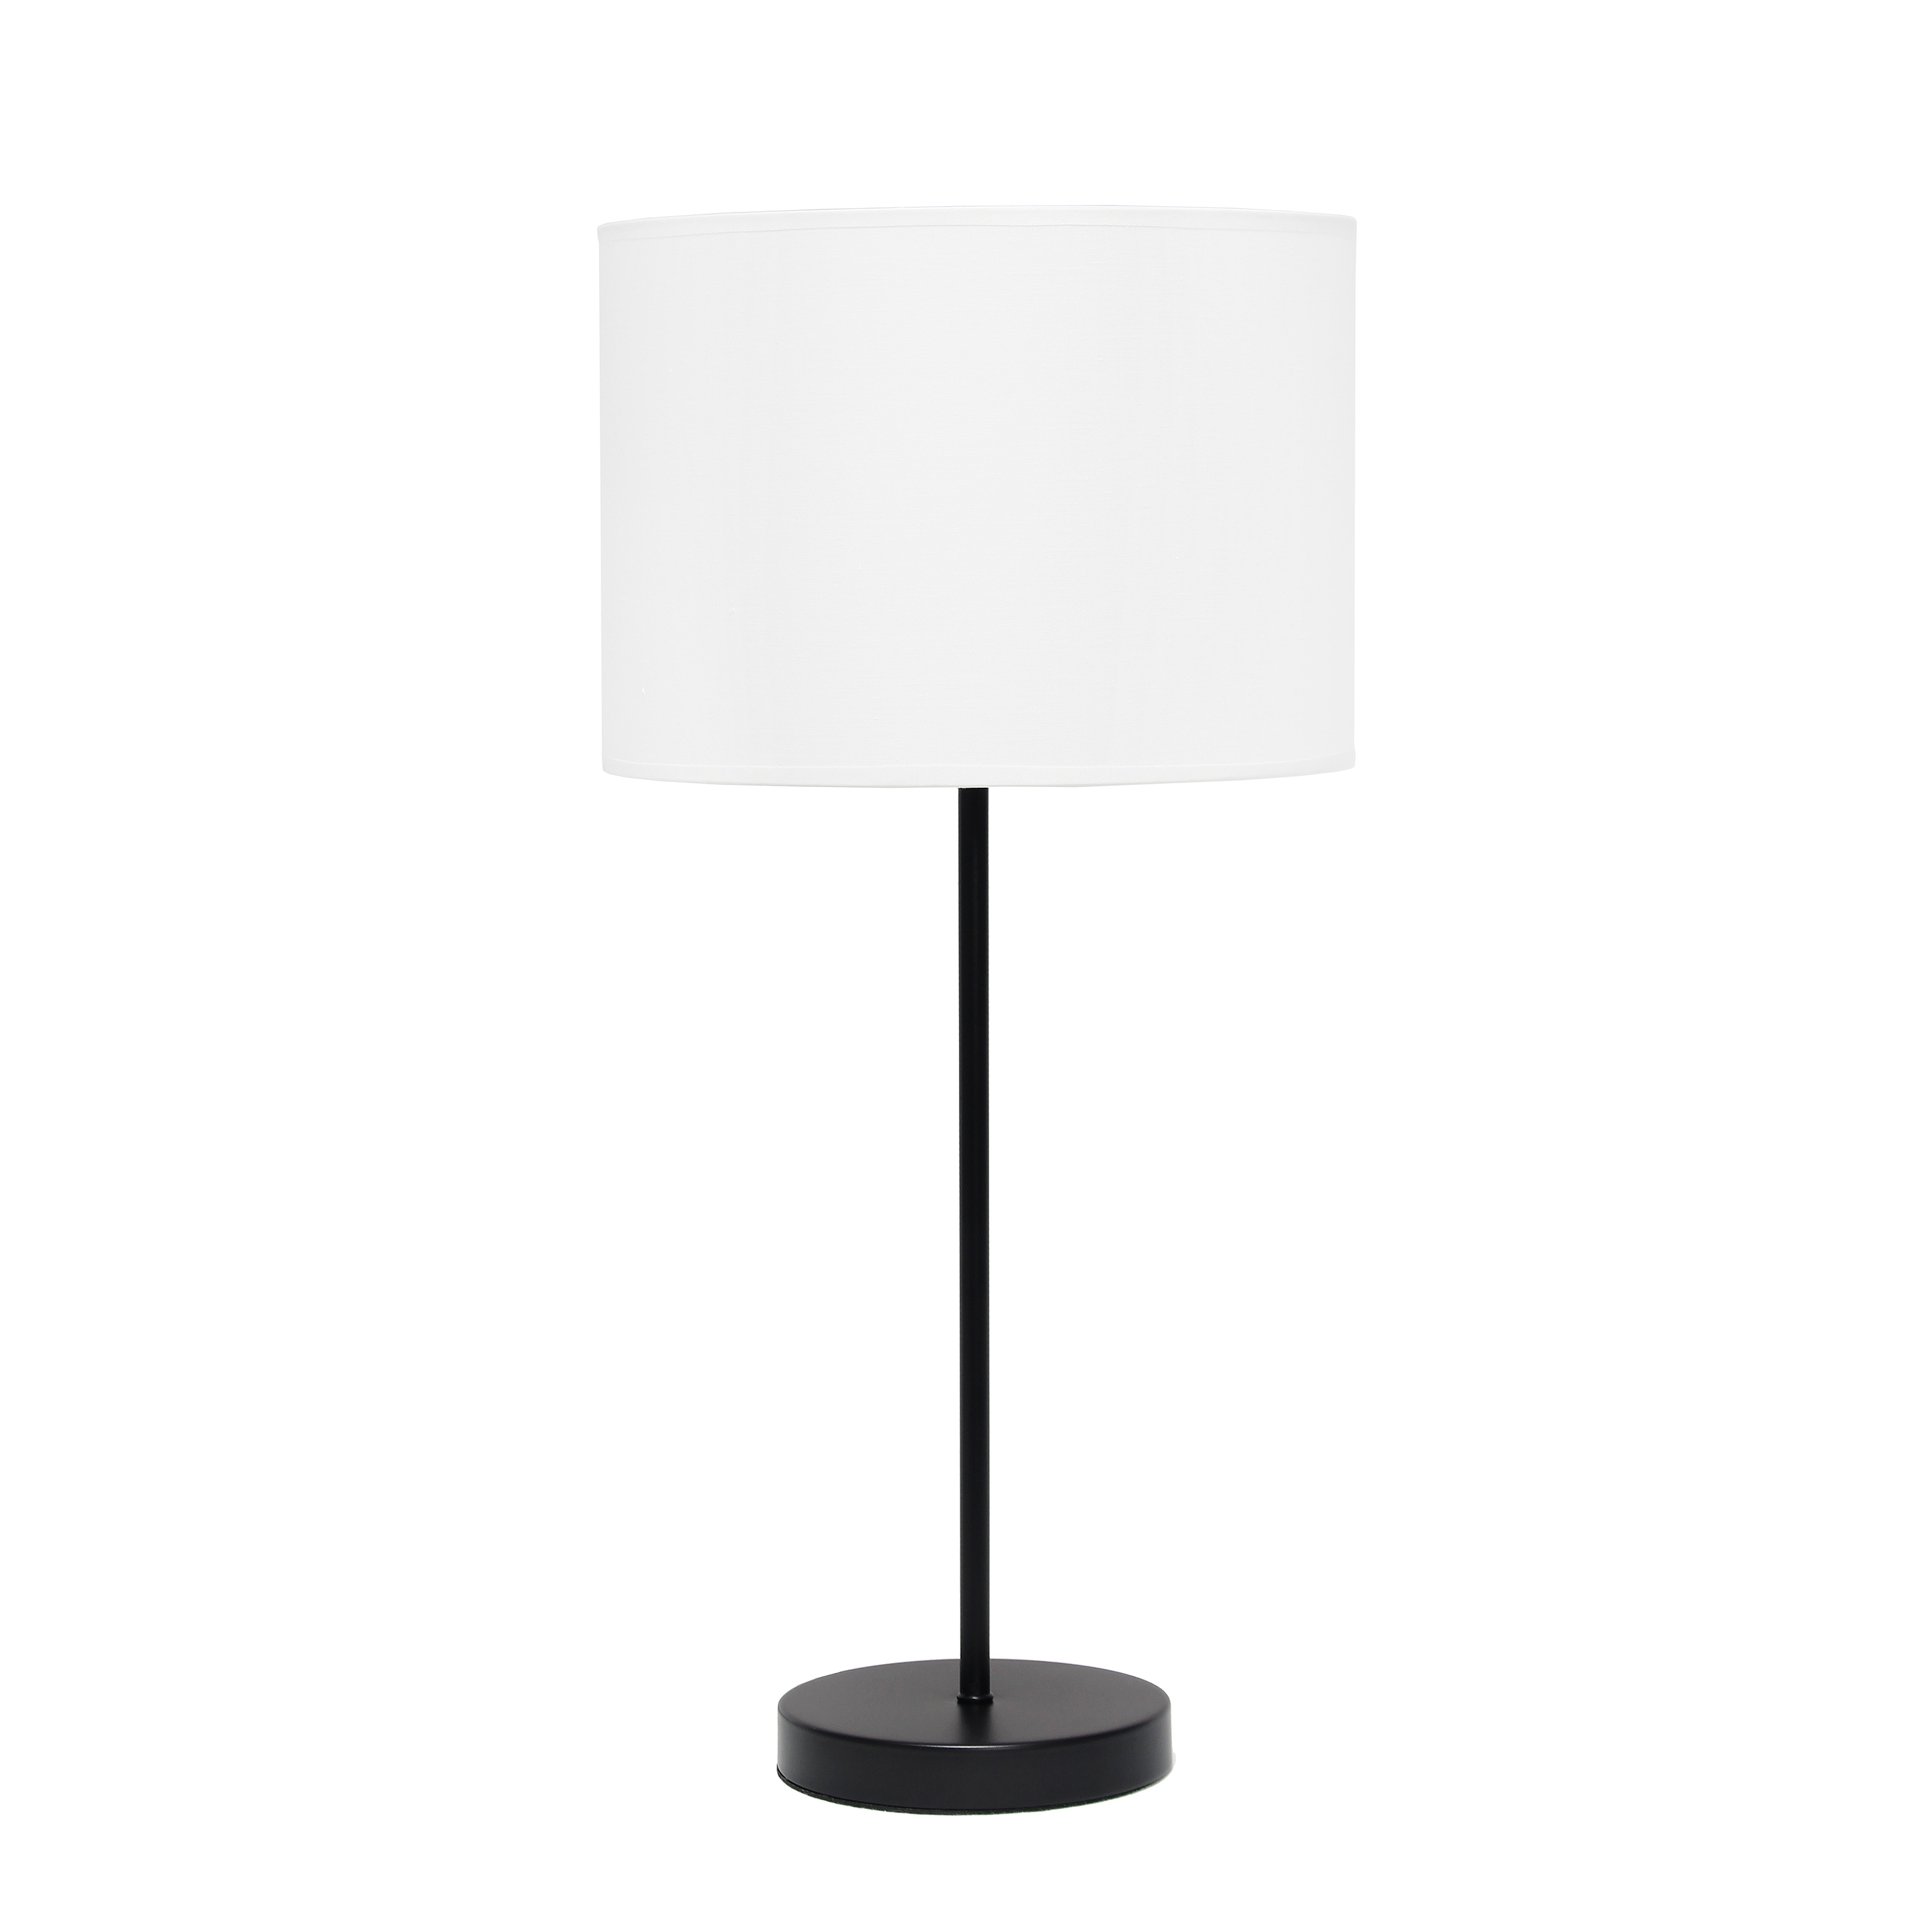 Simple Designs Black Stick Lamp with Fabric Shade, White